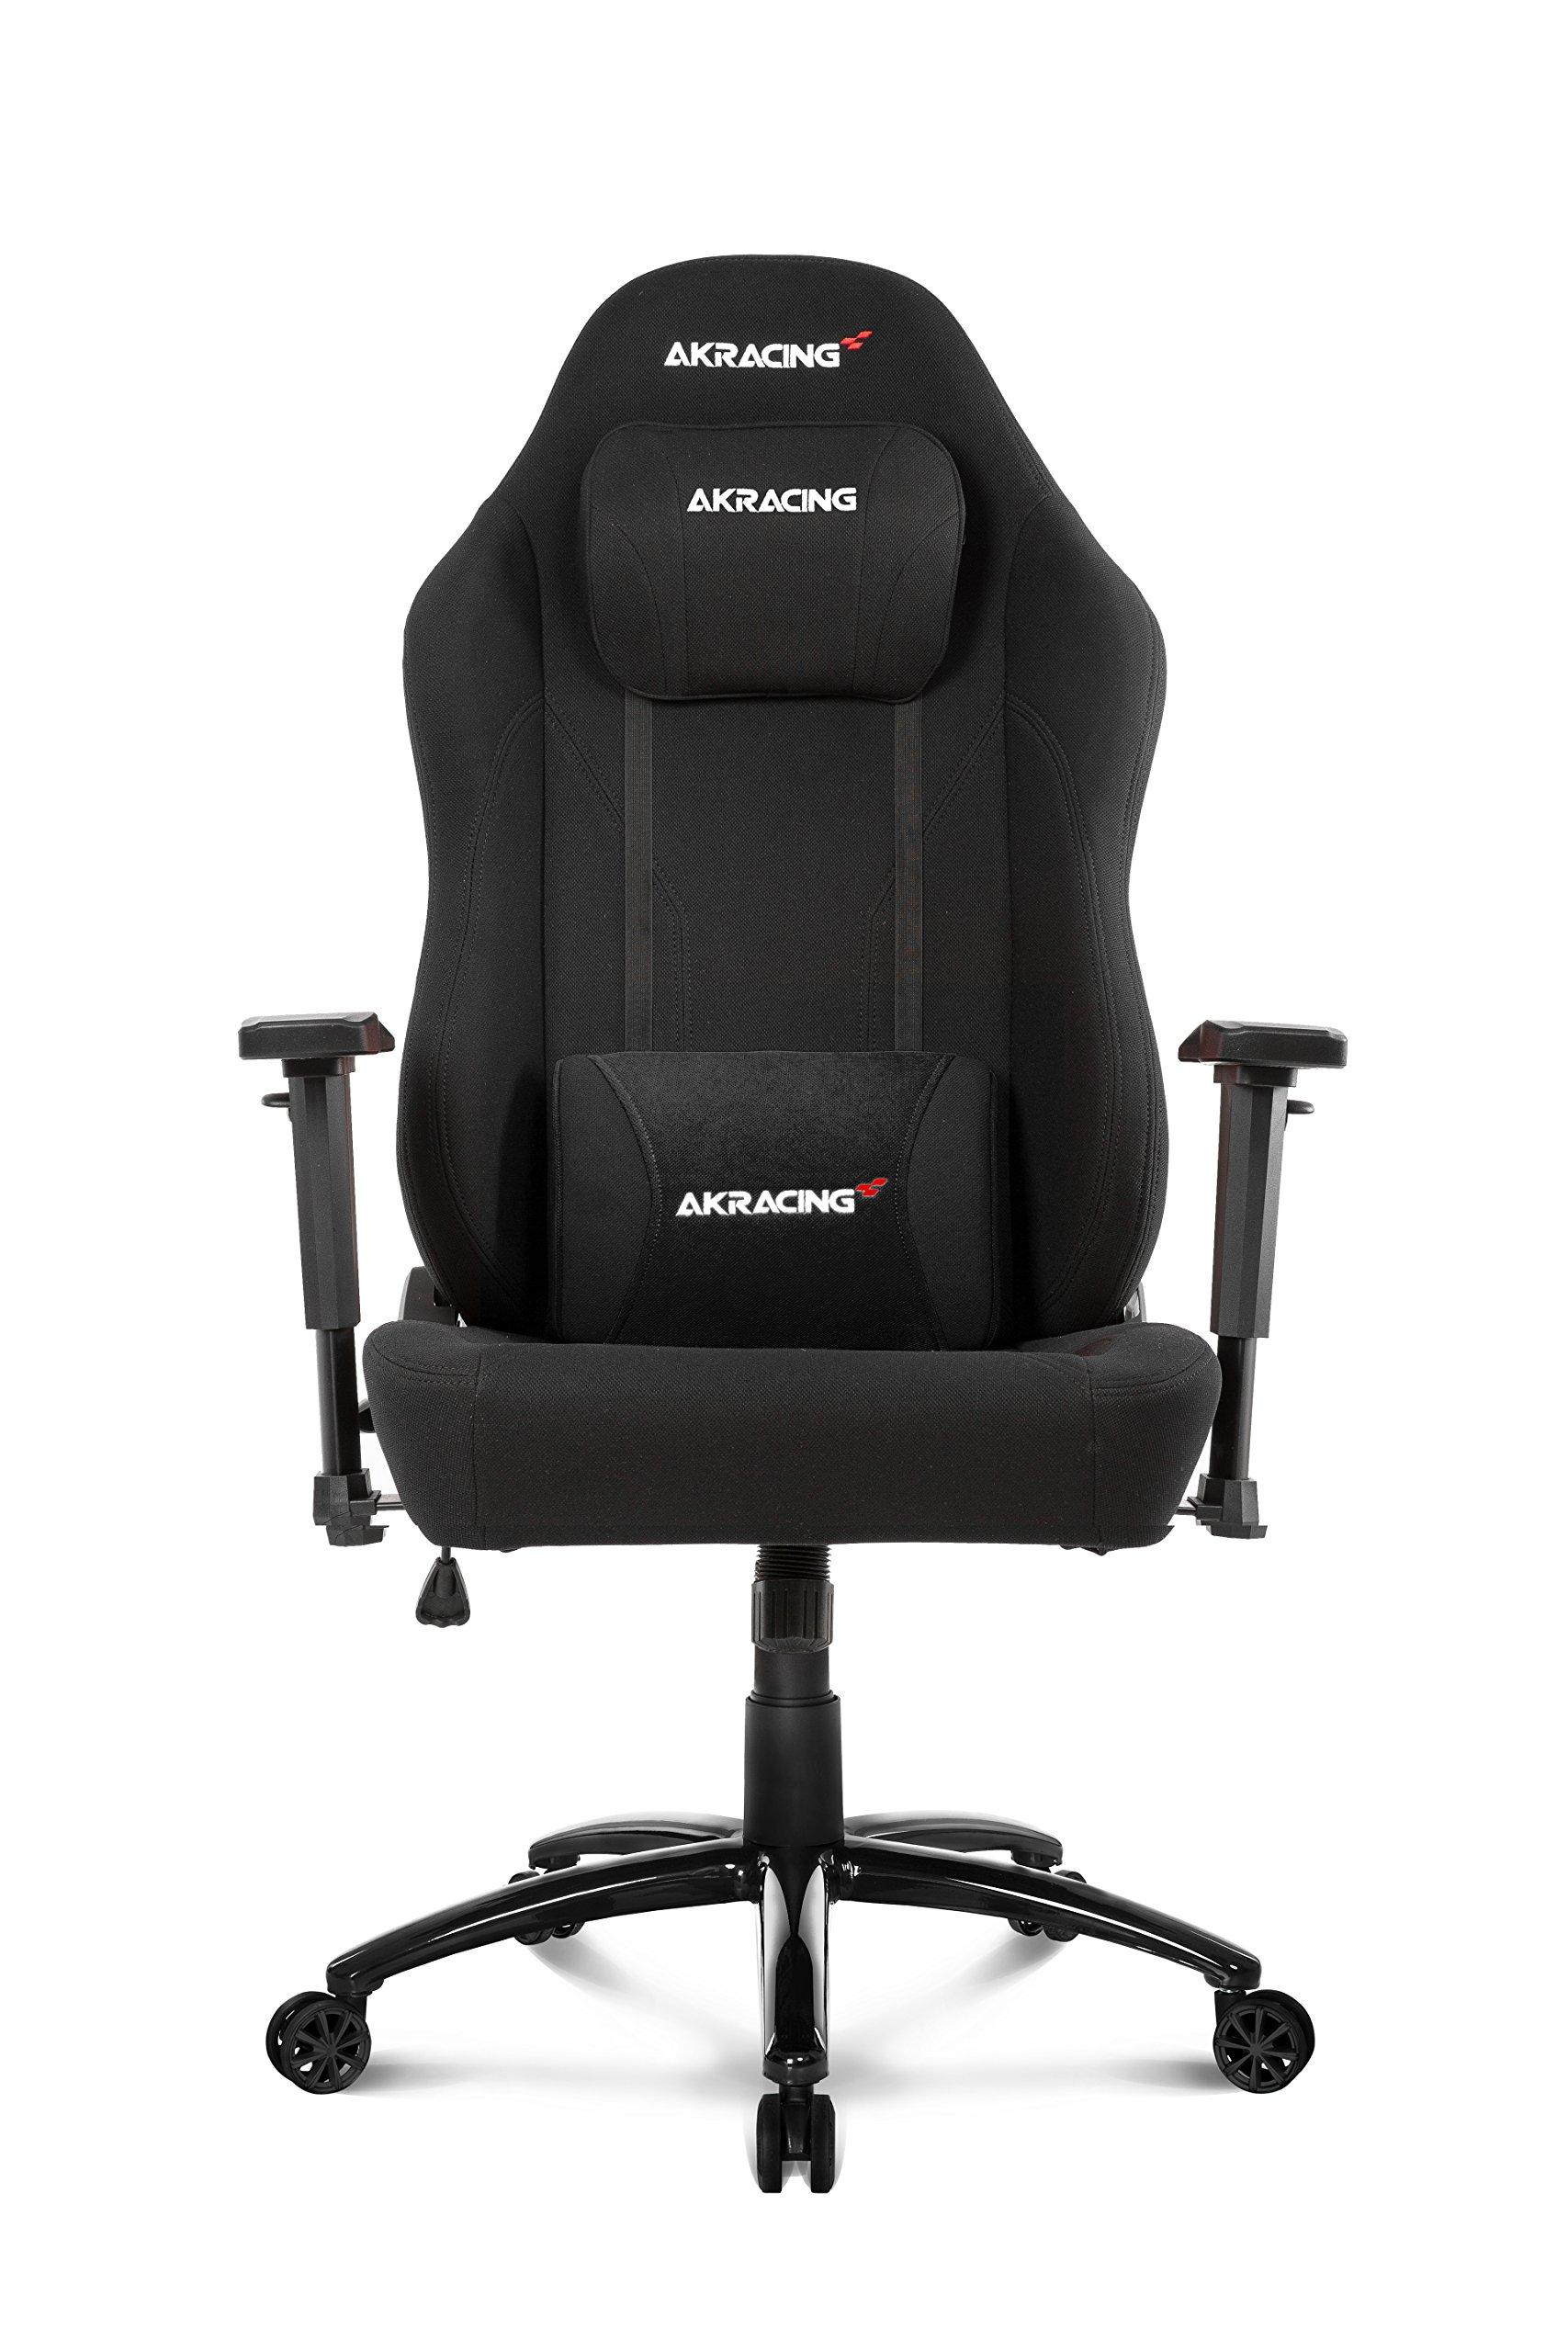 AKRacing Office Series Opal Ergonomic Fabric Computer Chair with High Backrest, Recliner, Swivel, Tilt, Rocker and Seat Height Adjustment Mechanisms with 5/10 warranty - Black by AKRacing